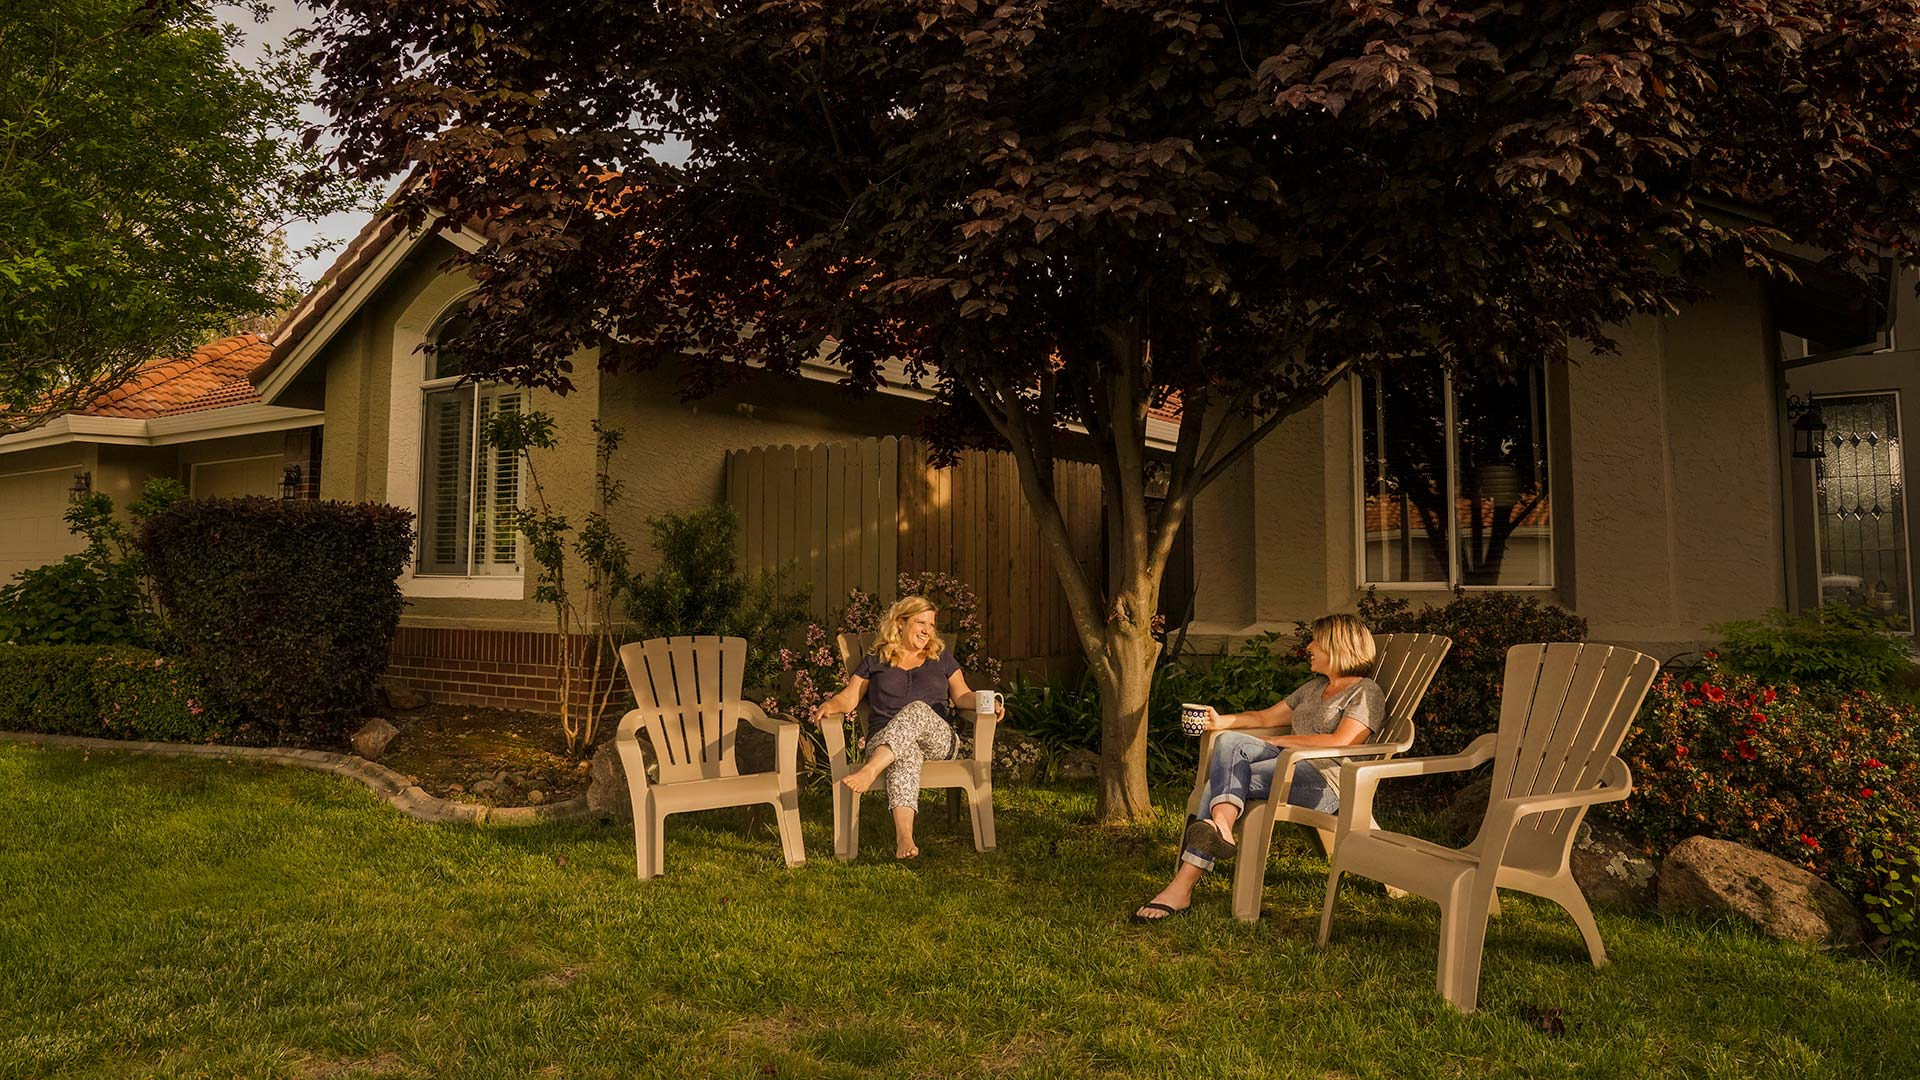 Two women sit and talk in lawn chairs in front of their houses.